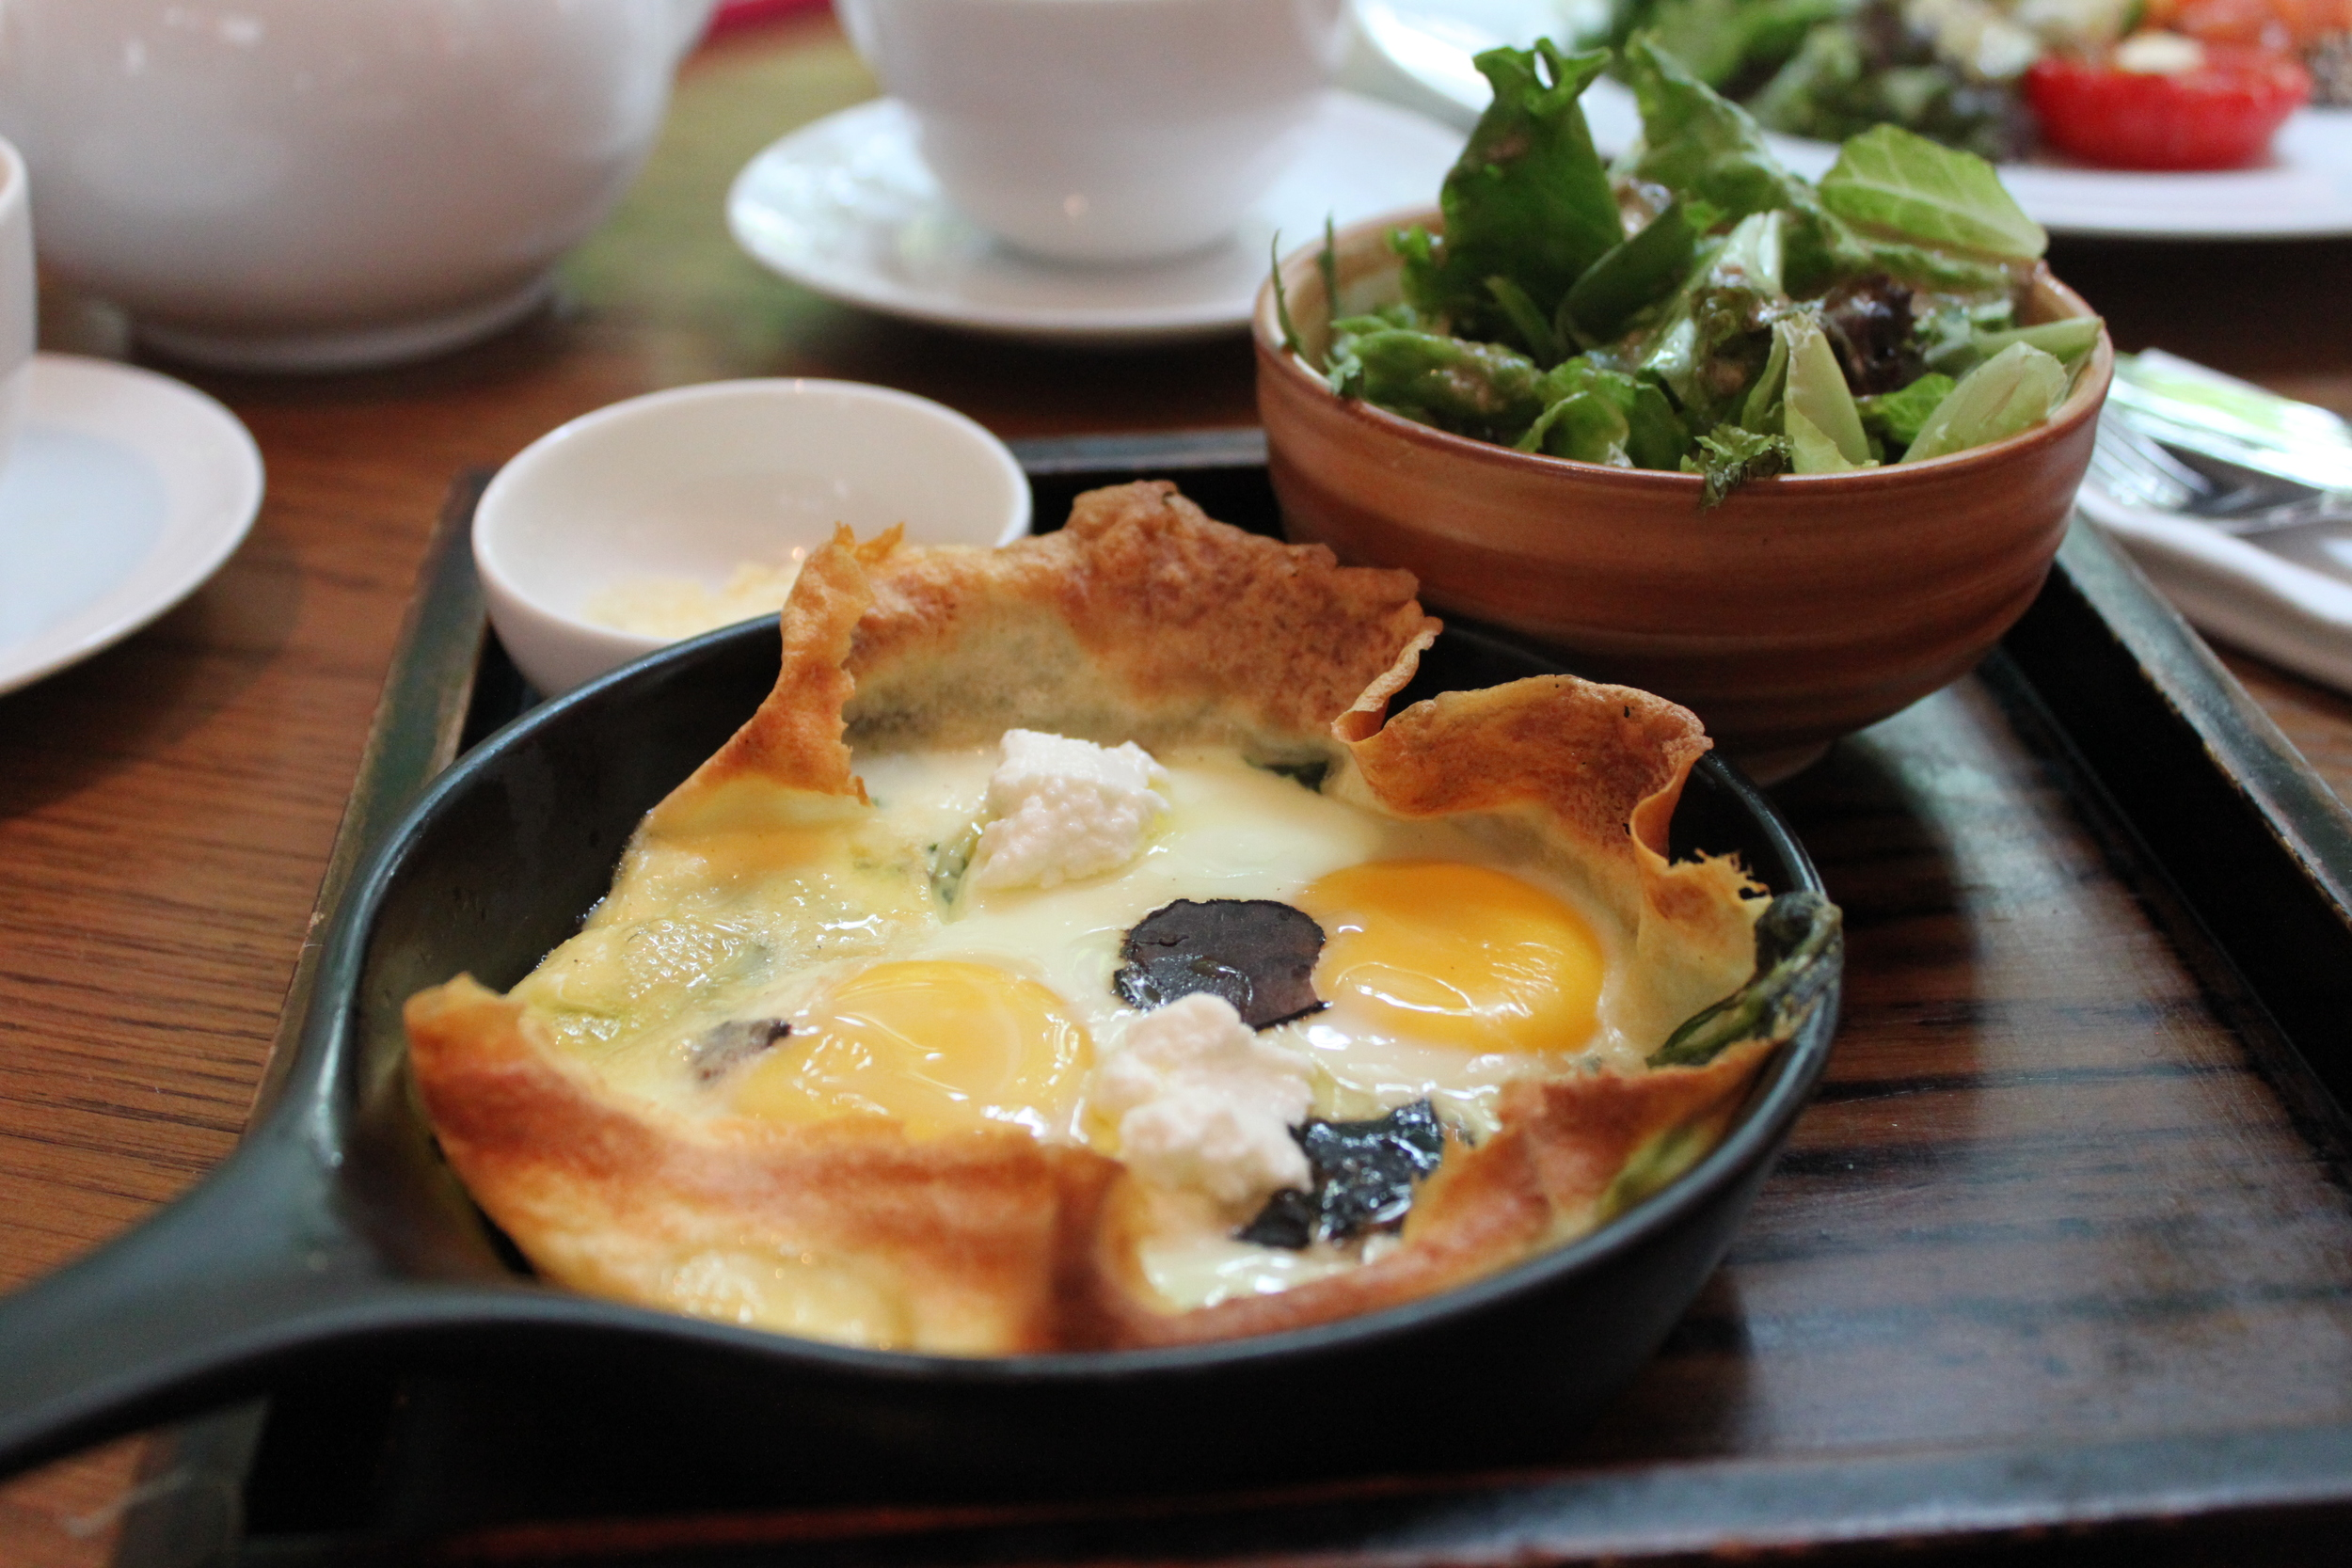 If you're looking for an eggy-crepe, this is a winner.